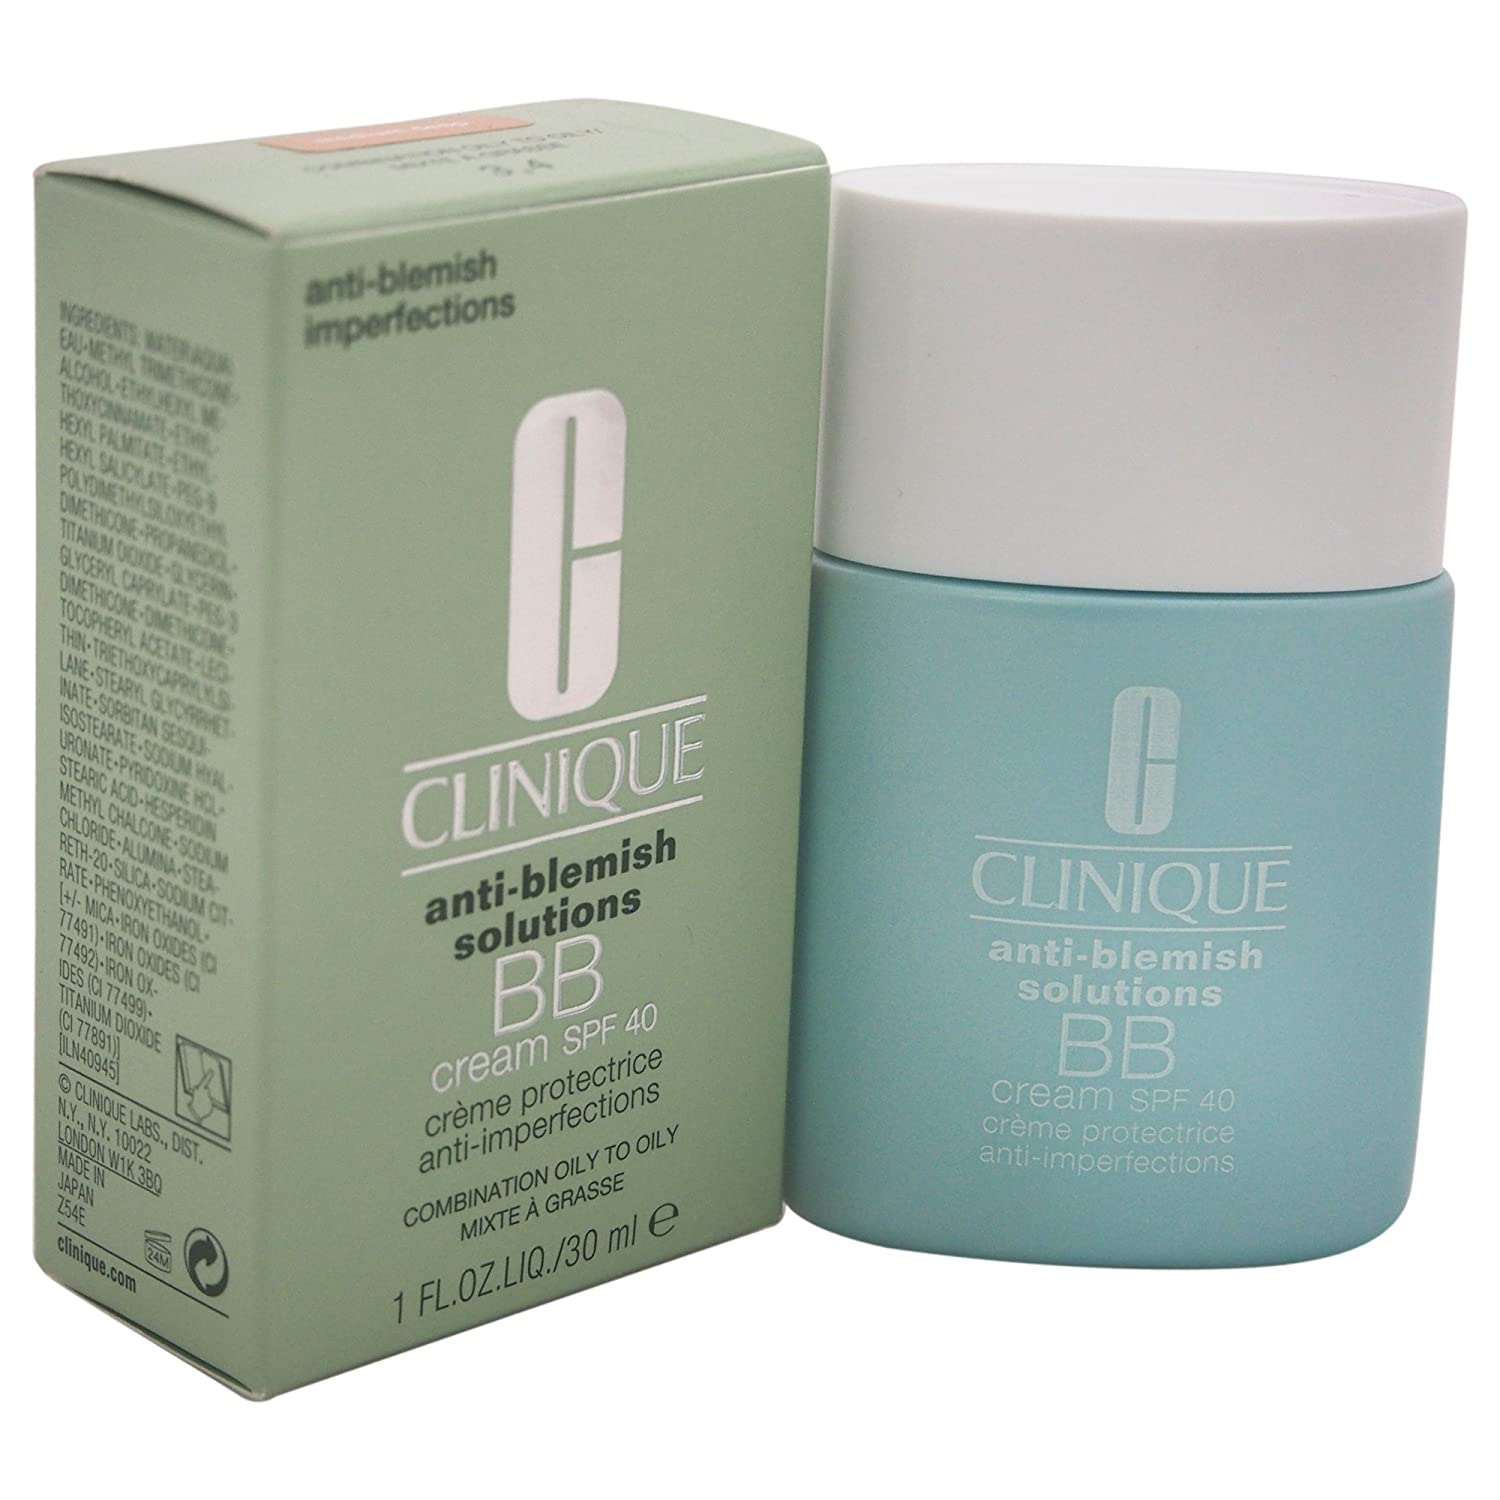 Anti-Blemish Solutions BB Cream SPF40 by Clinique Medium Deep / 1 fl.oz. 30ml 0020714694661 CLI00474_-30ML